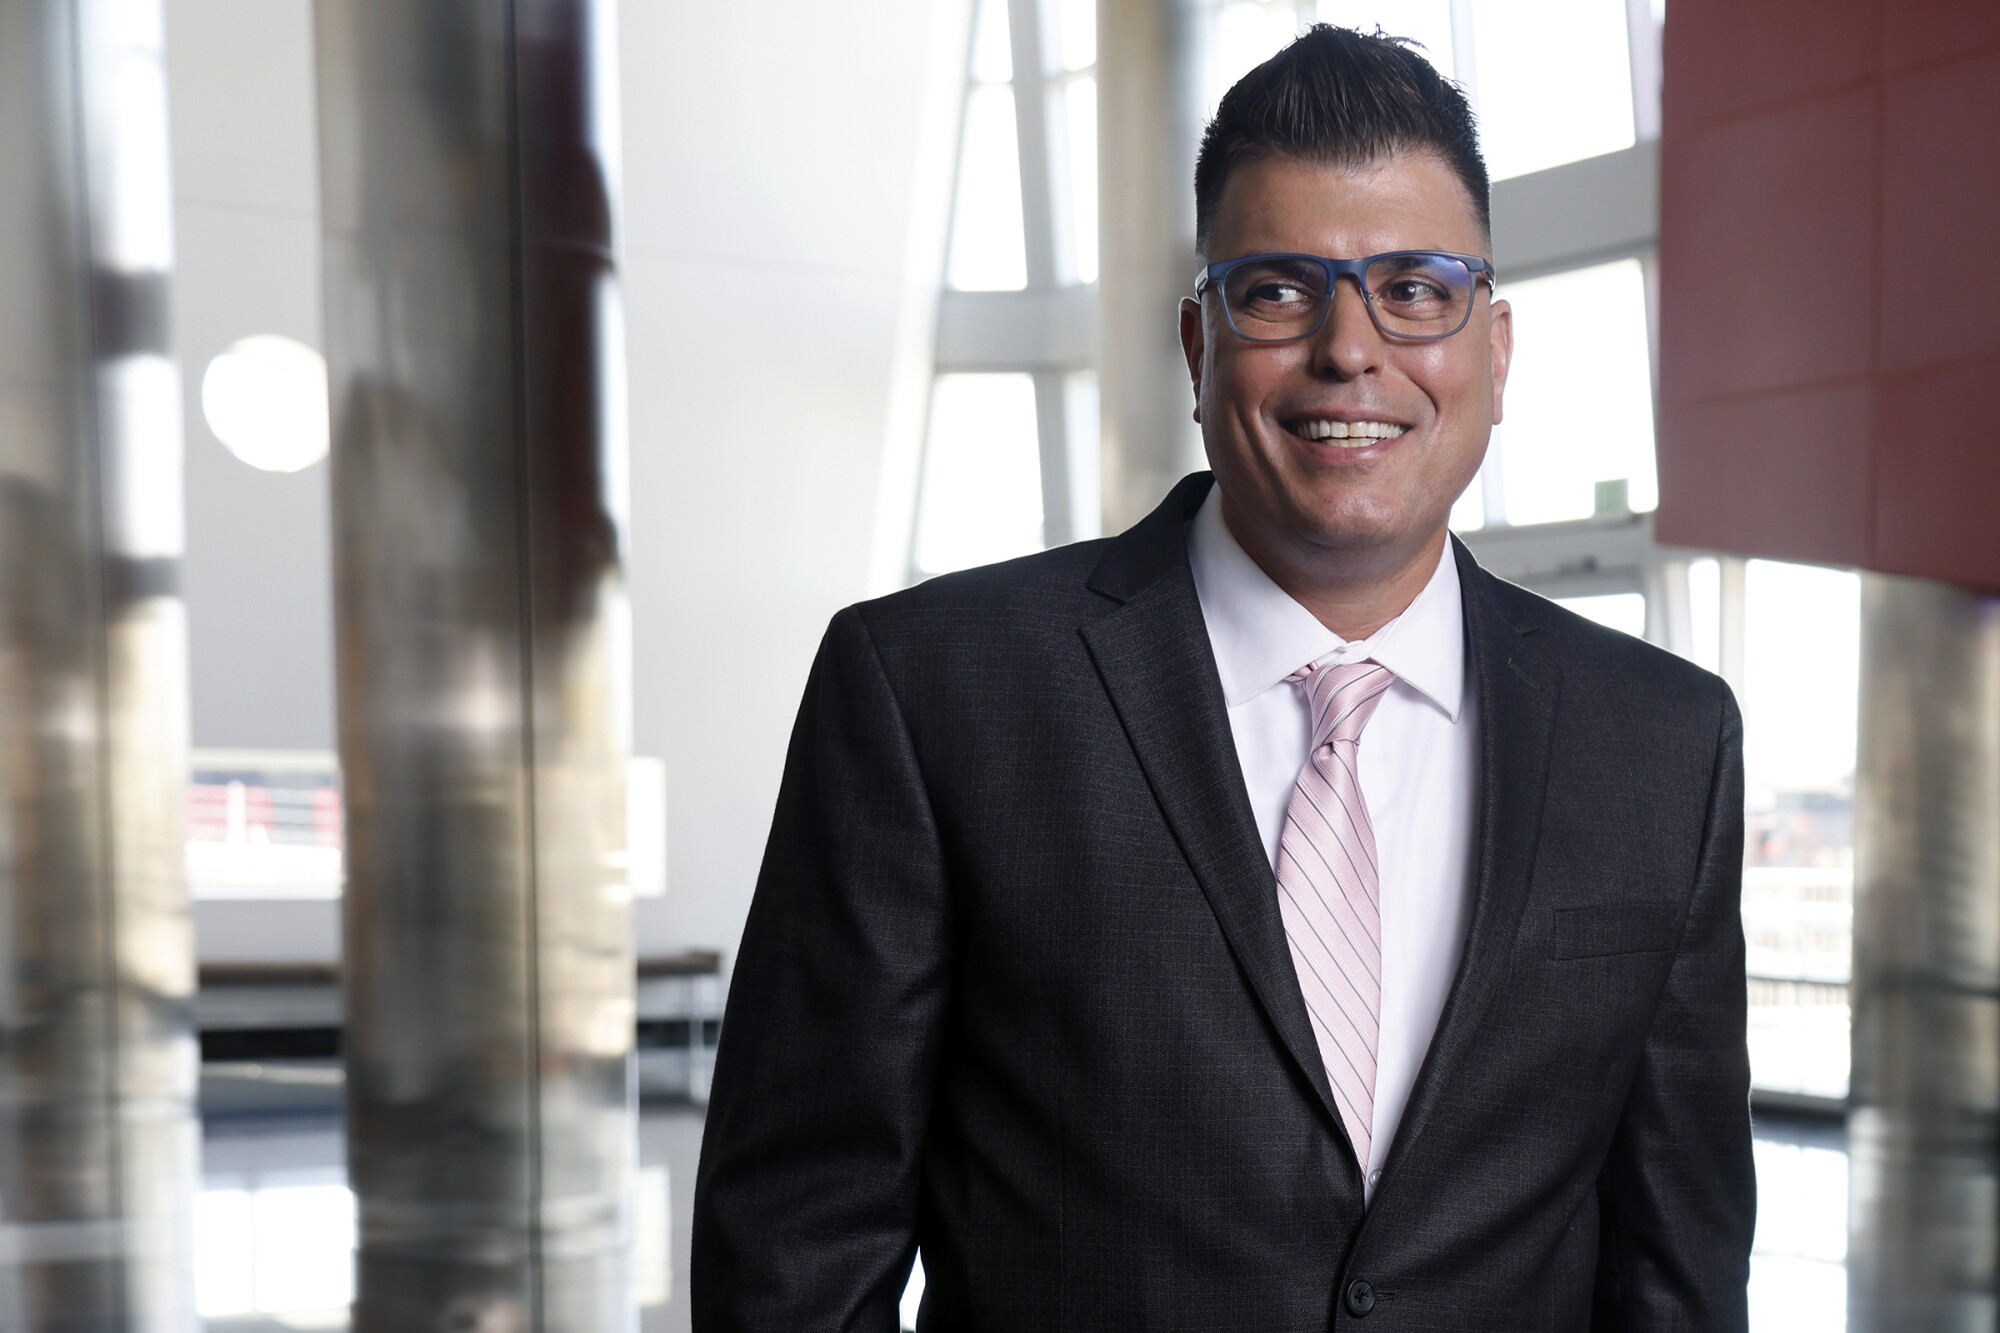 Carlos Cortez, who has been named chancellor of the San Diego Community College District